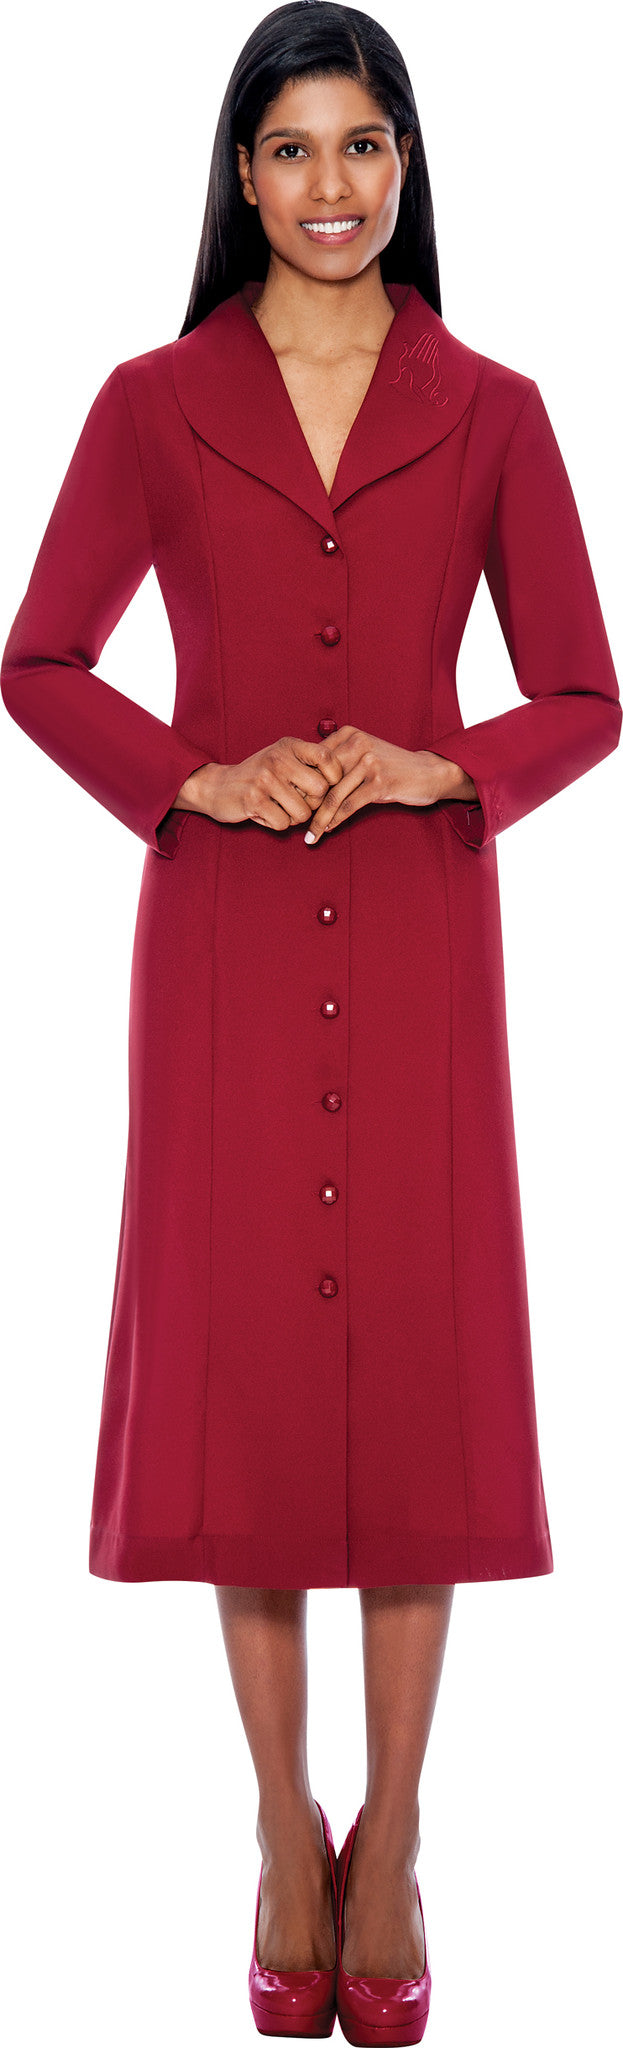 Usher Suit-11674-Burgundy - Church Suits For Less